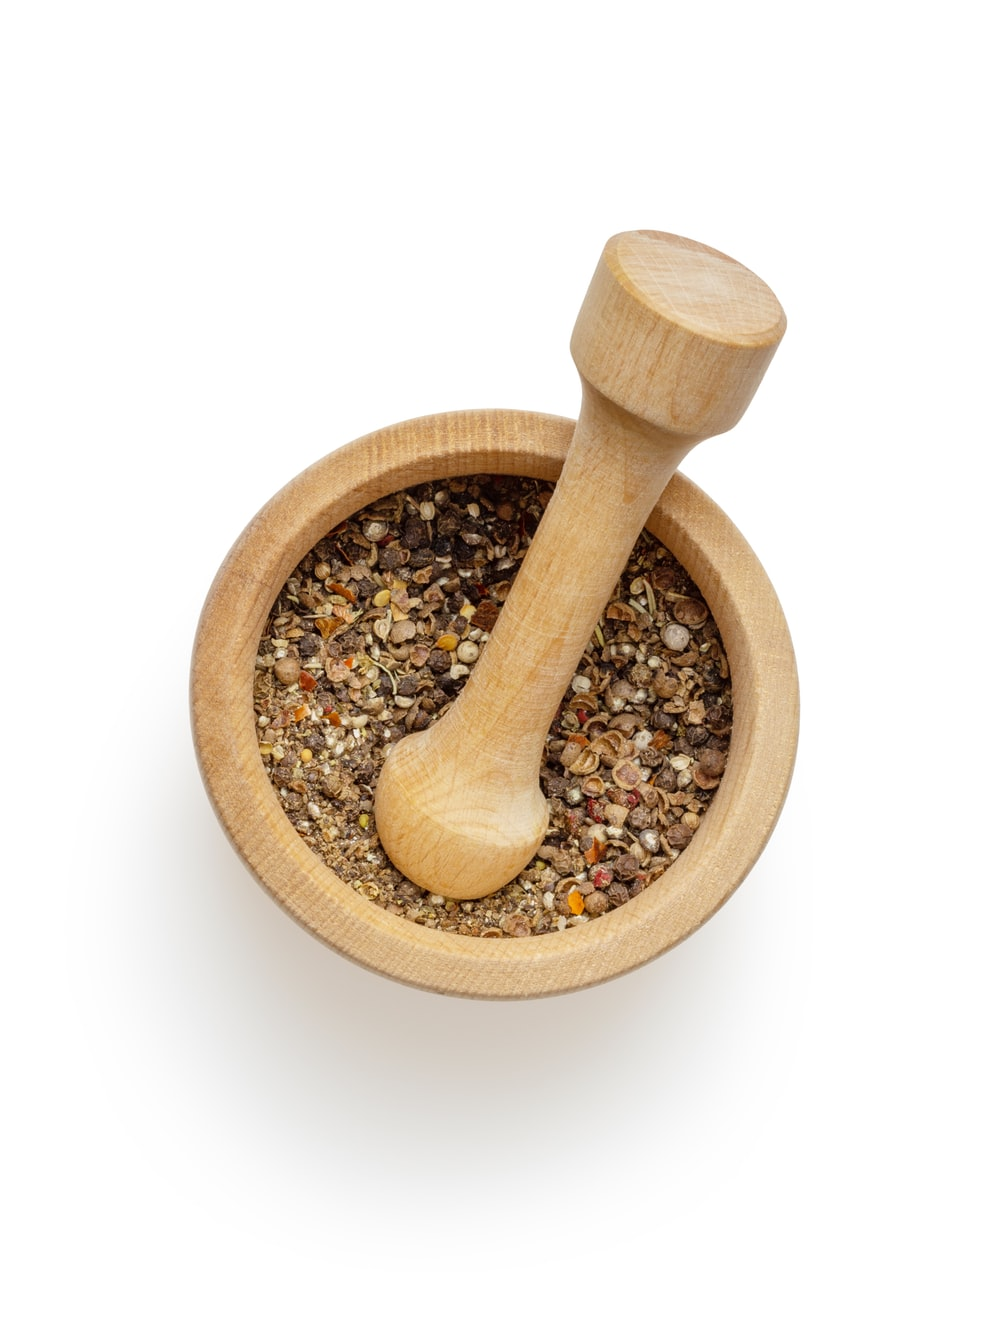 brown wooden mortar and pestle